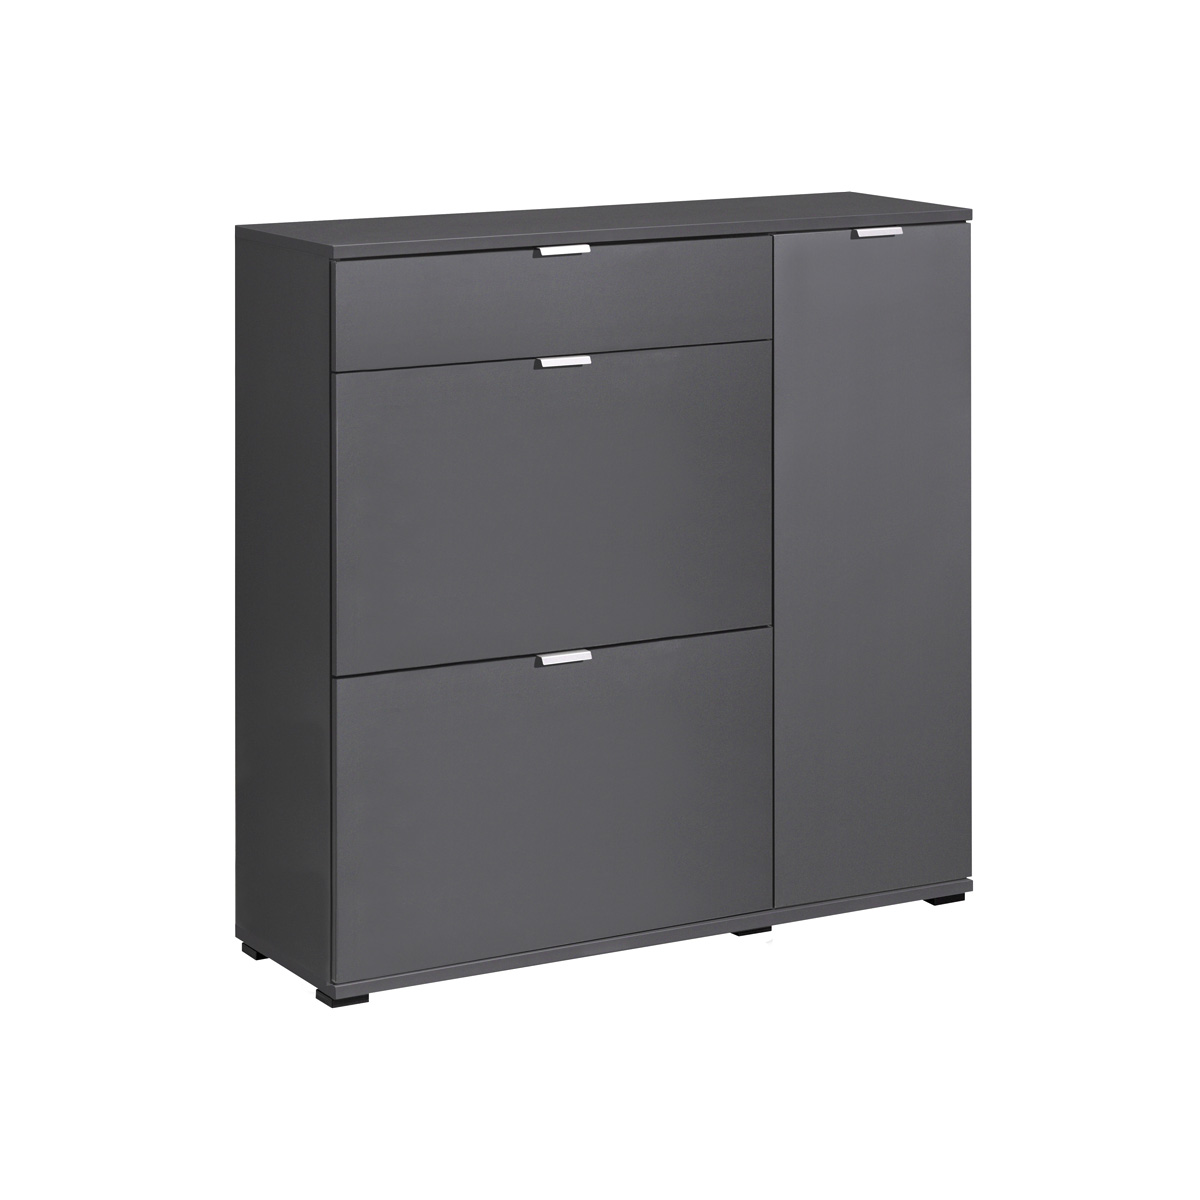 schuhkommode 3 colorida garderobe schuhschrank wei graphit eiche von cs schmal ebay. Black Bedroom Furniture Sets. Home Design Ideas